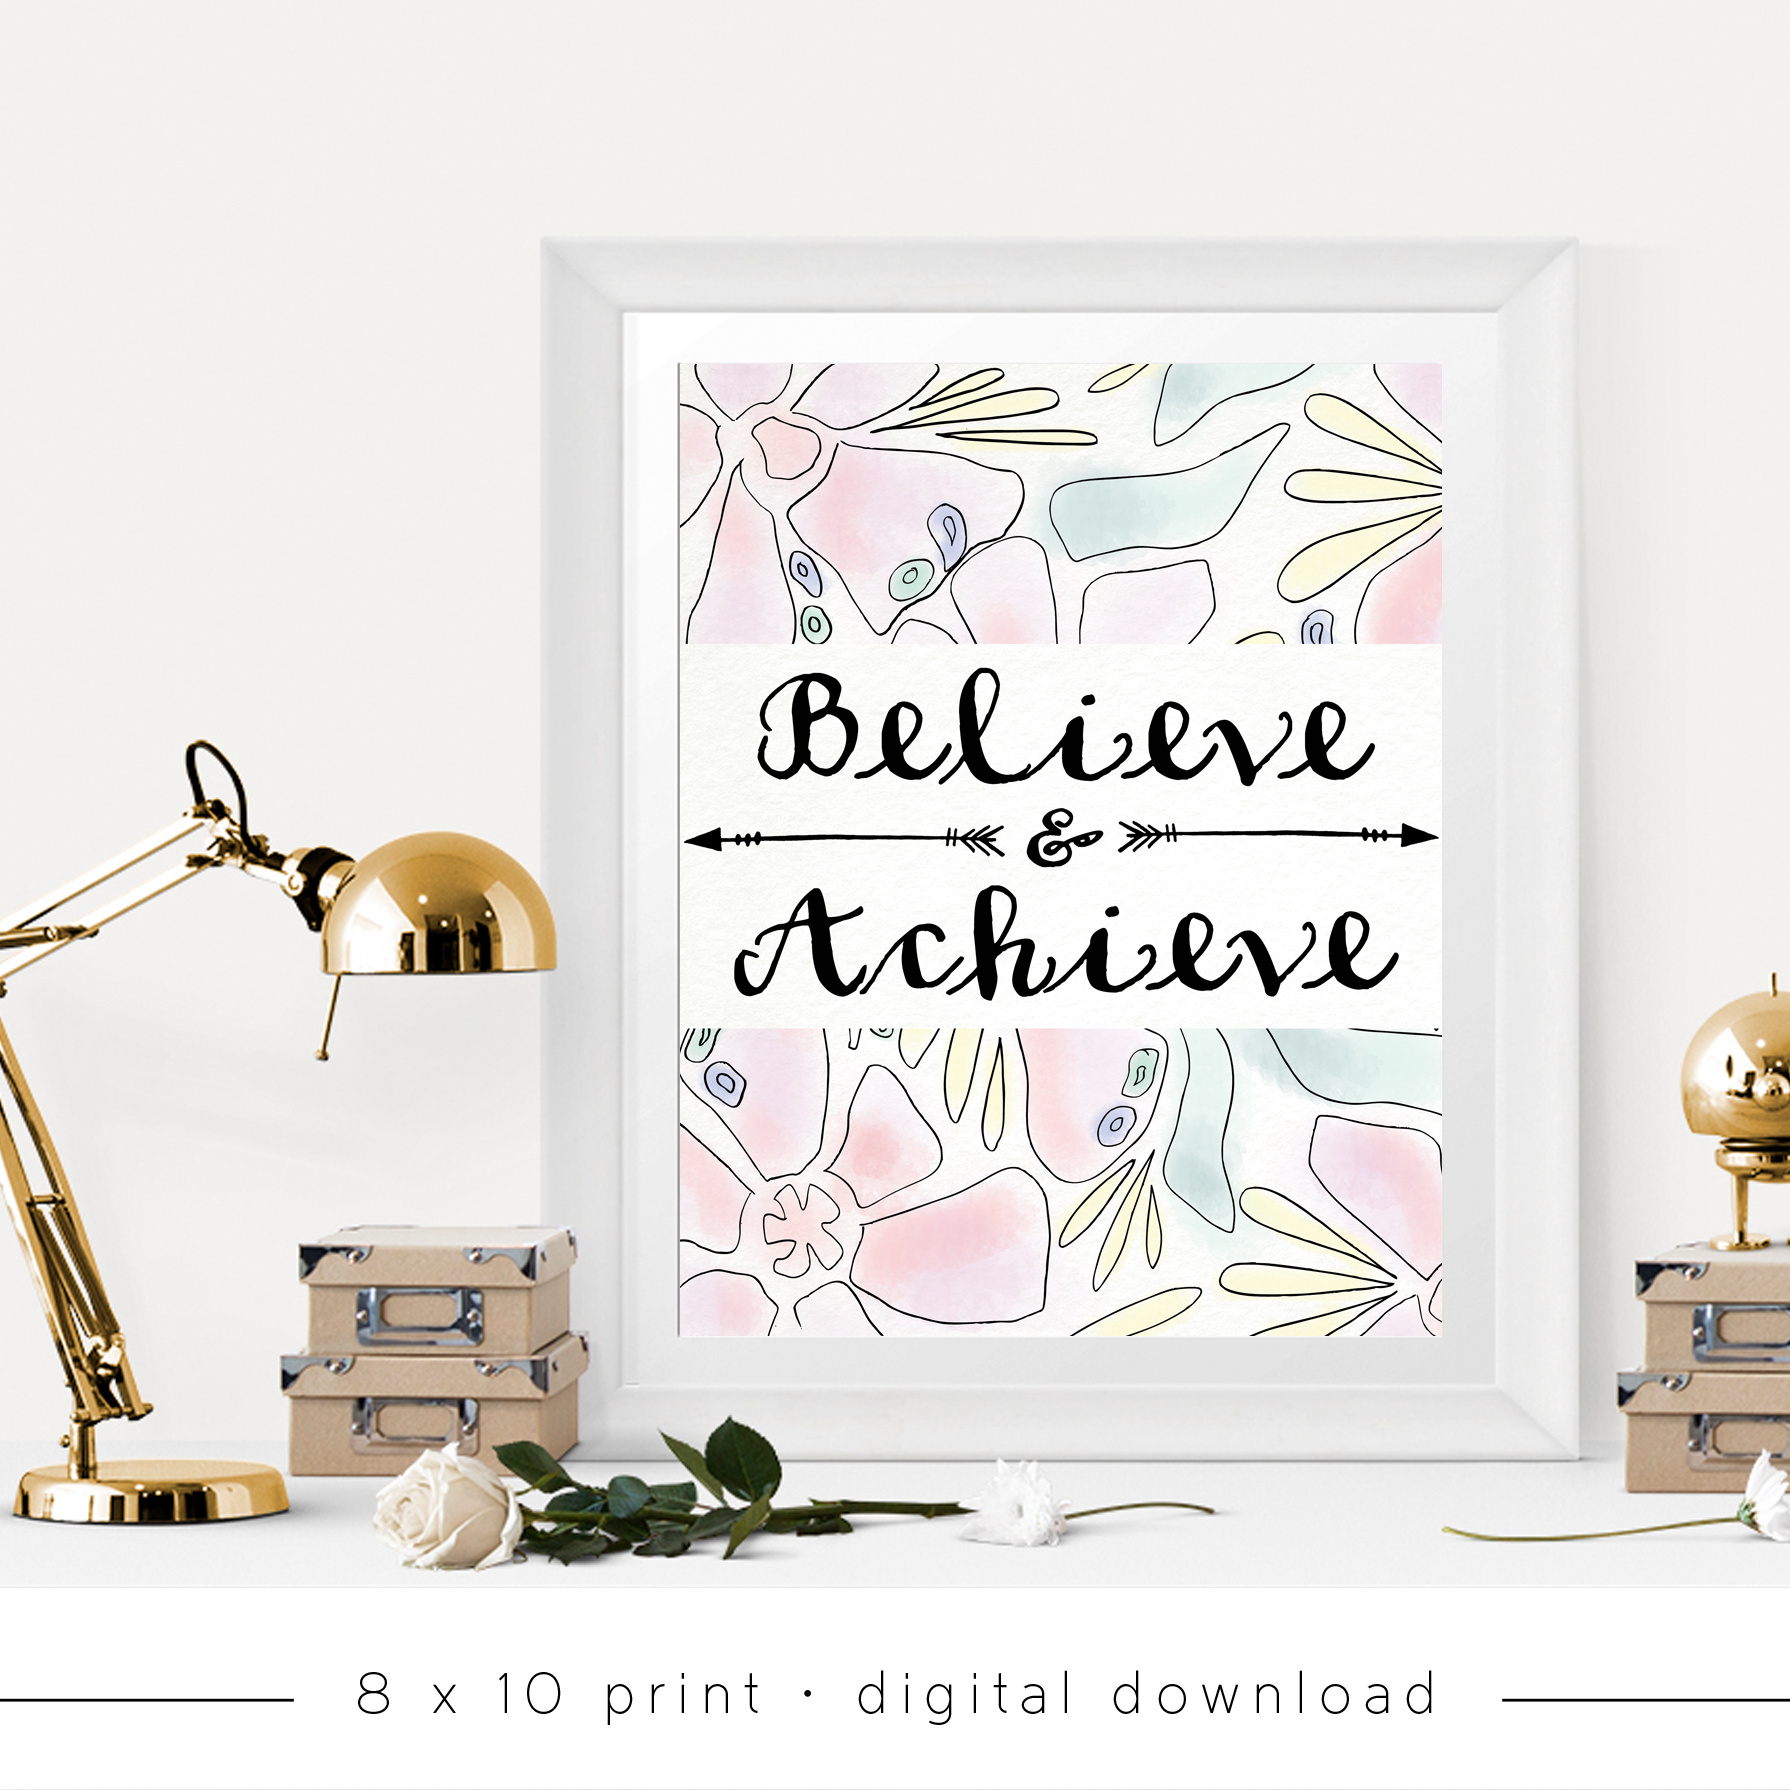 twgdesigns-designs-art-print-printable-quote-inspirational-digital-download-etsy-illustration-watercolor-boho-arrows-believe-achieve